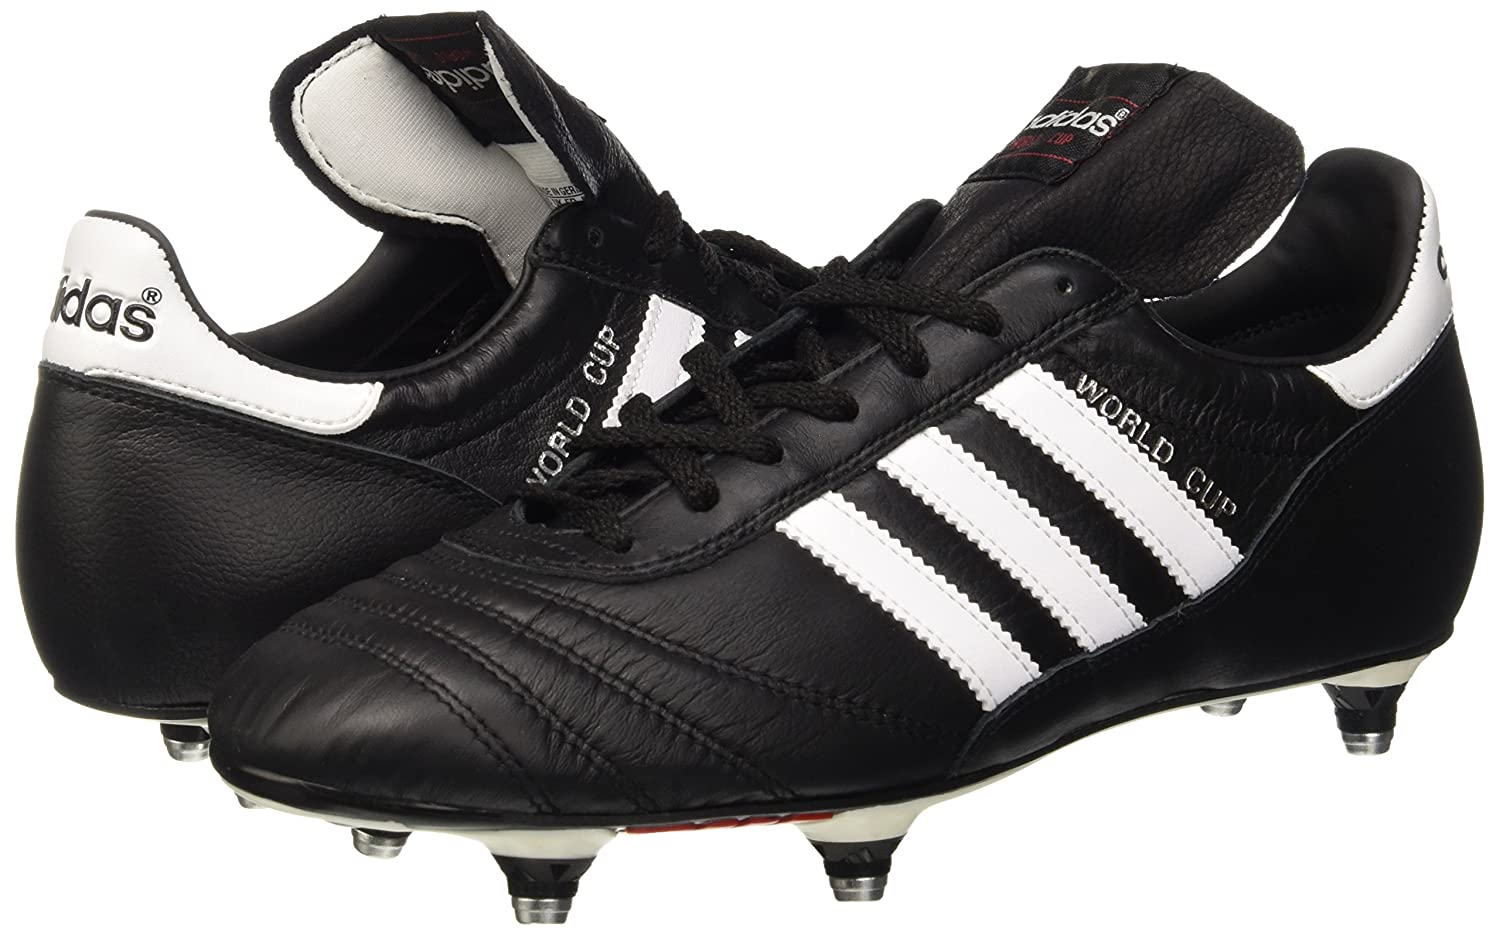 adidas Originals World Cup, Botas de fútbol para Hombre: Amazon.es: Zapatos y complementos